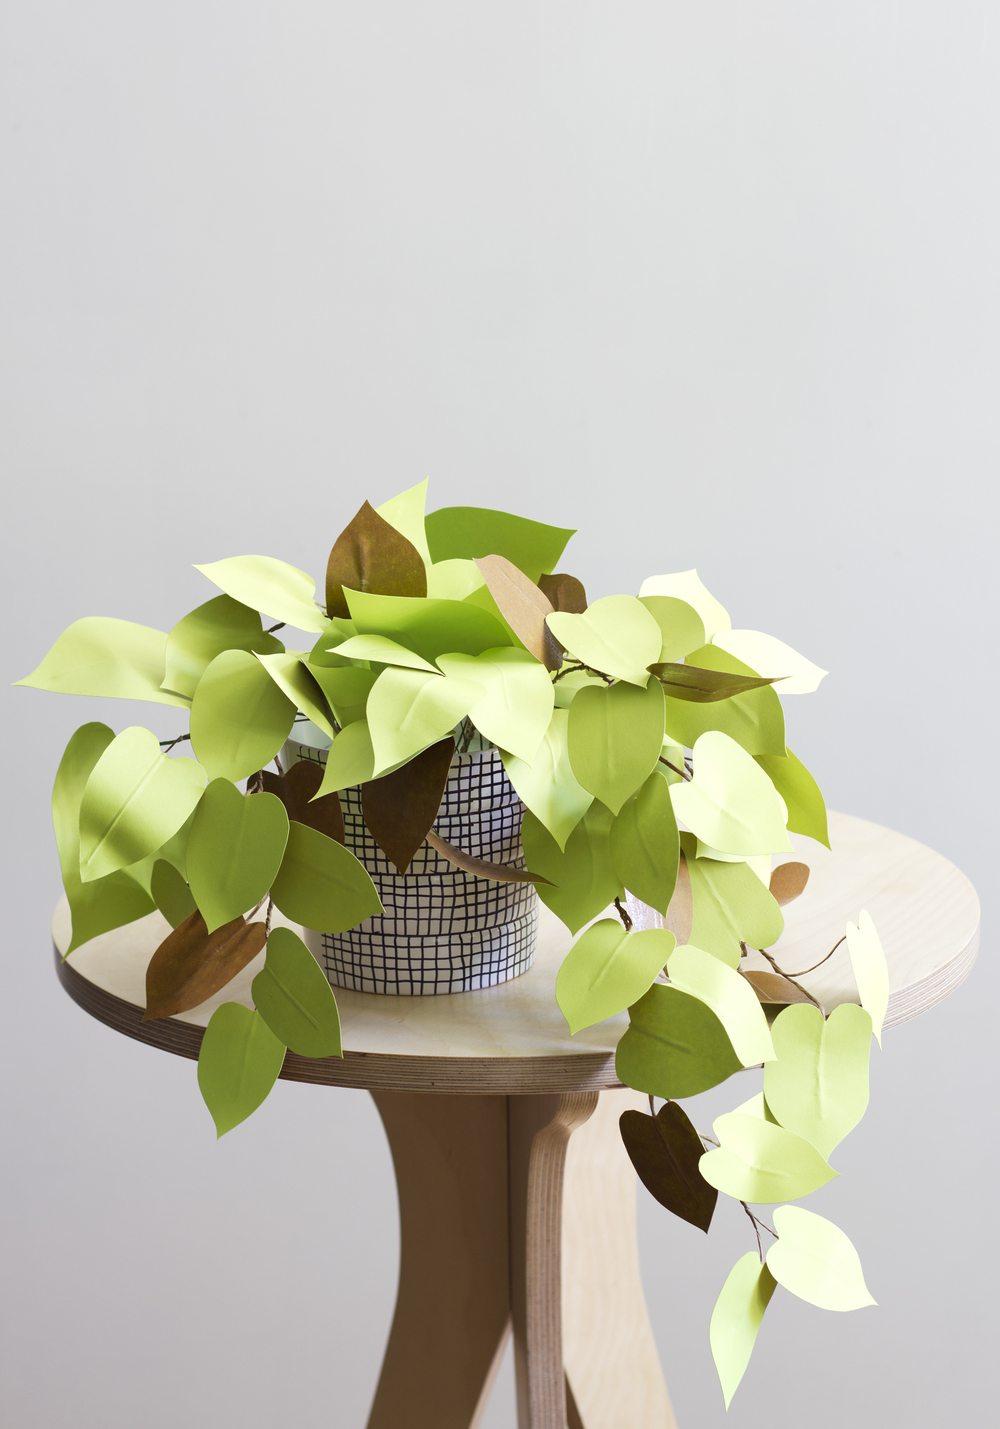 Corrie_Hogg_paper_heartleaf_philodendron_plant_DIY_4.jpg